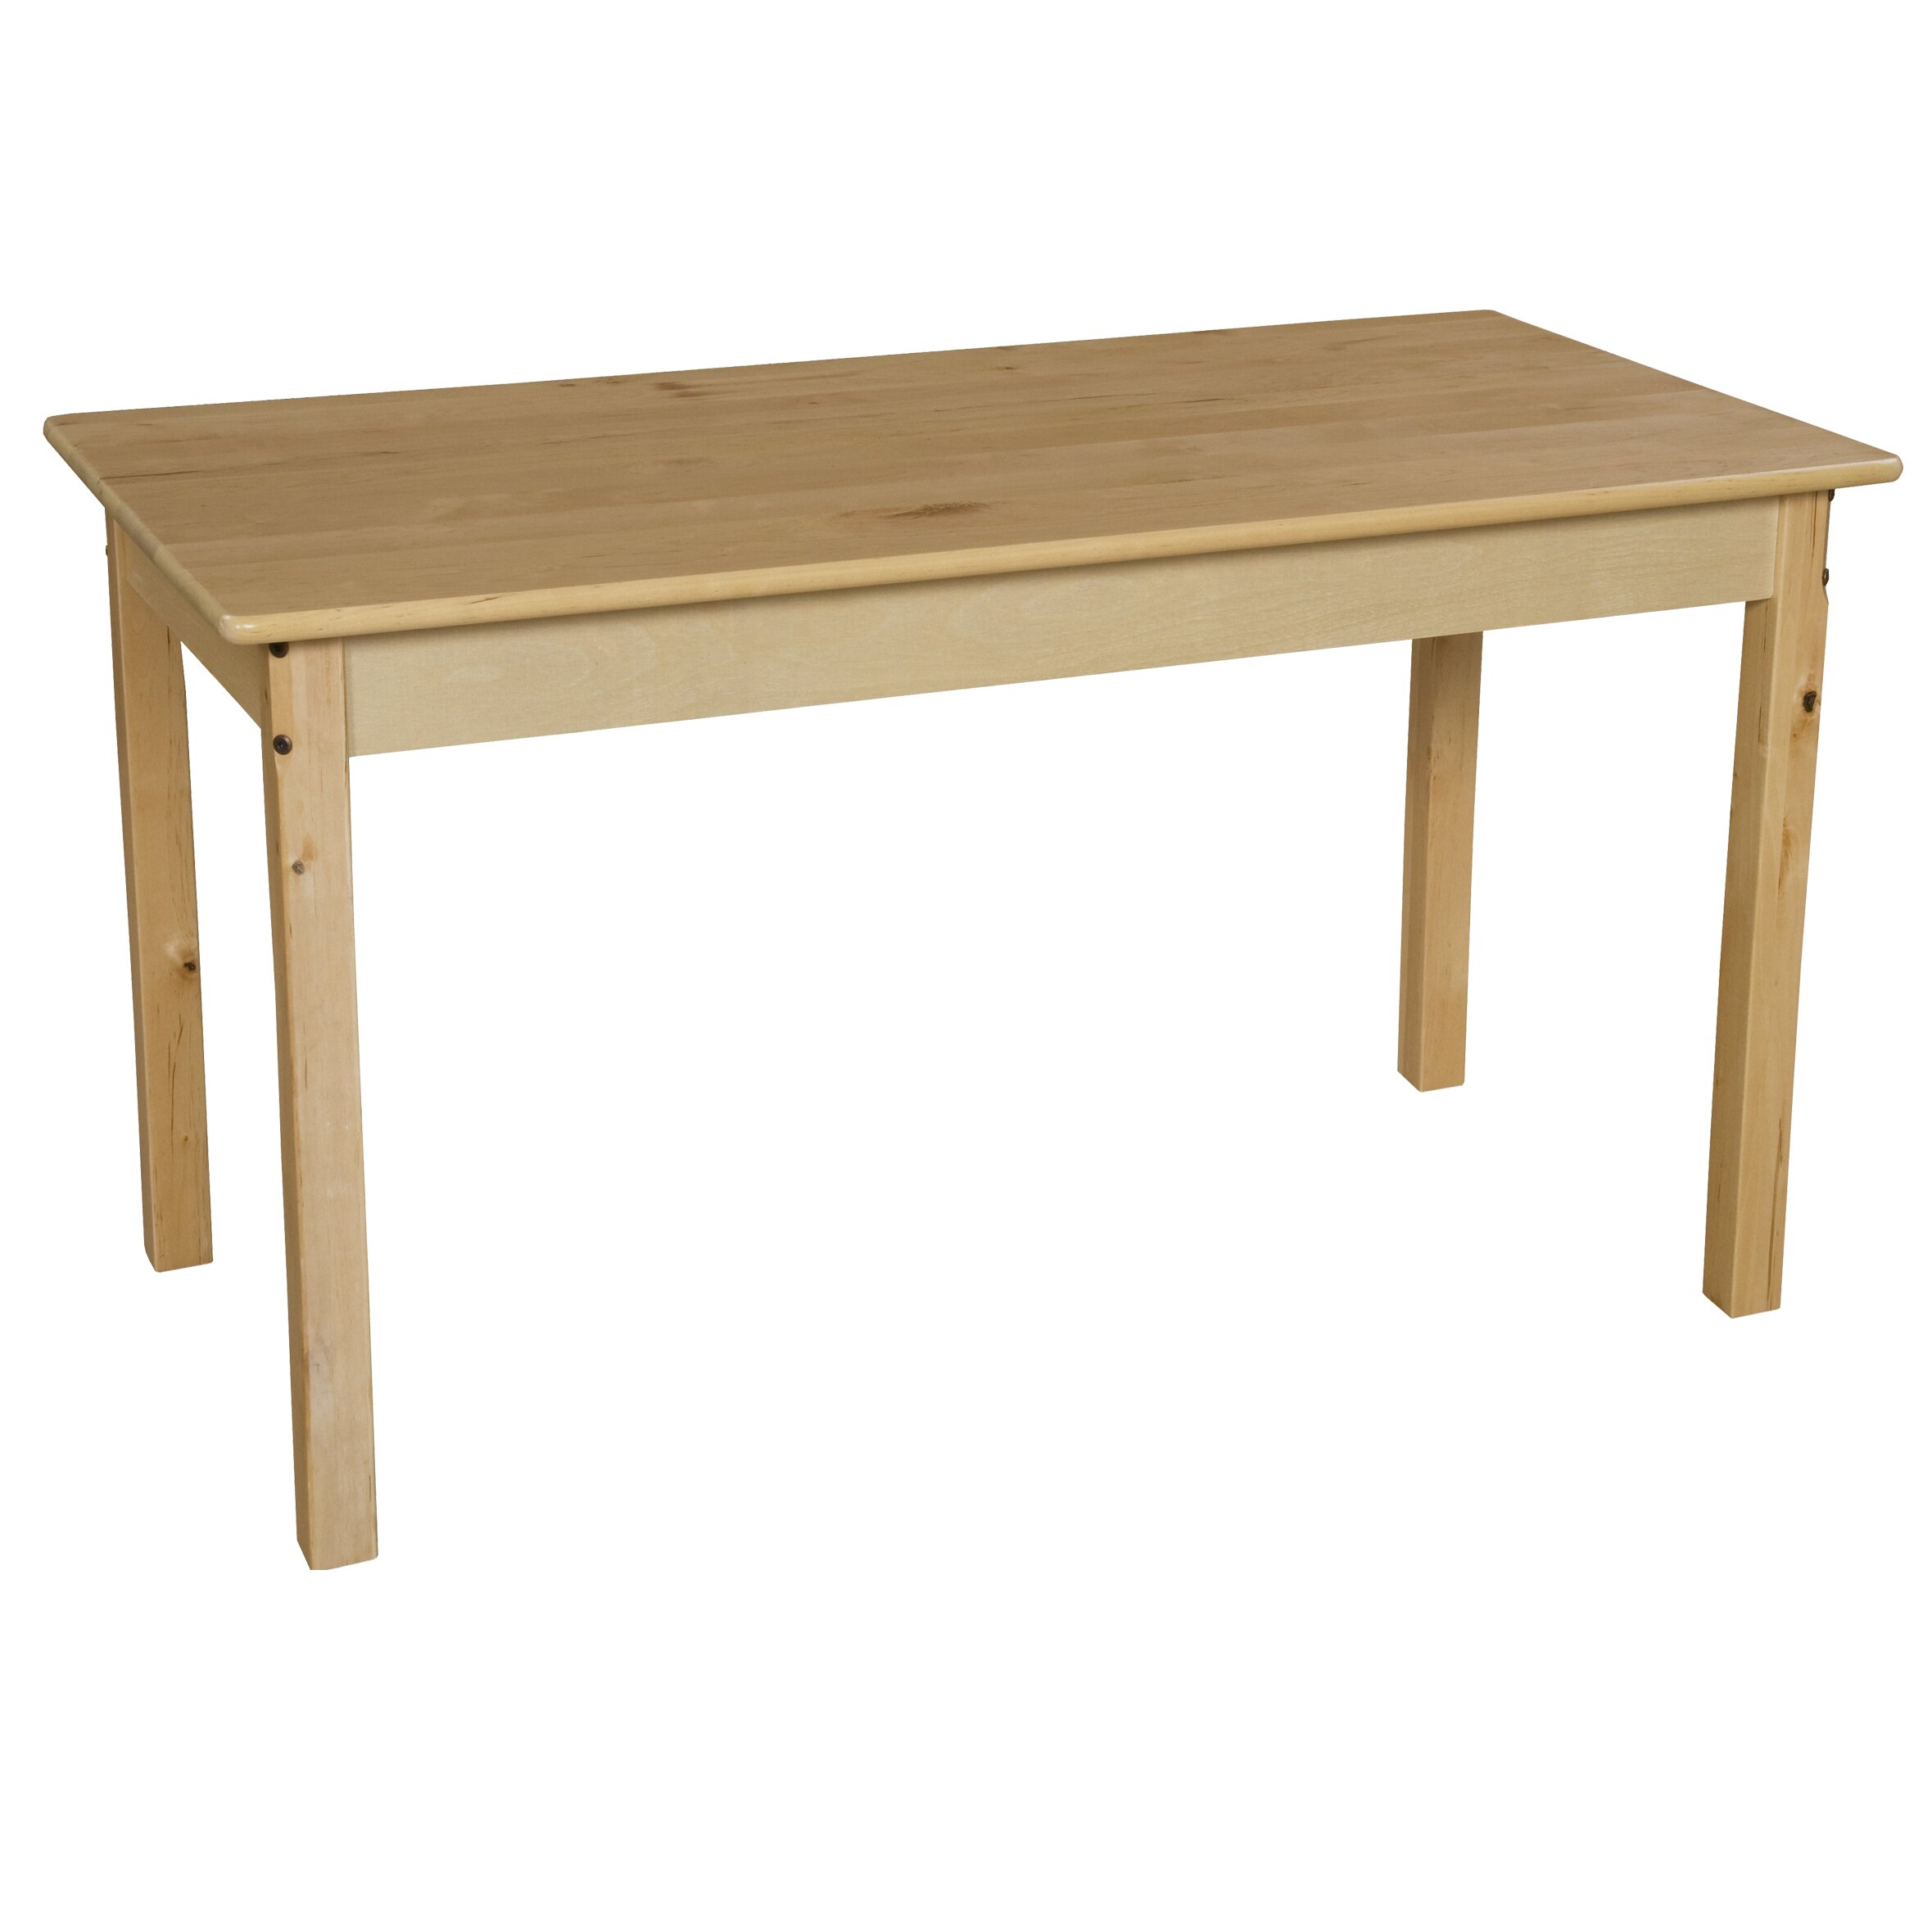 wood designs 48 x 24 rectangular activity table